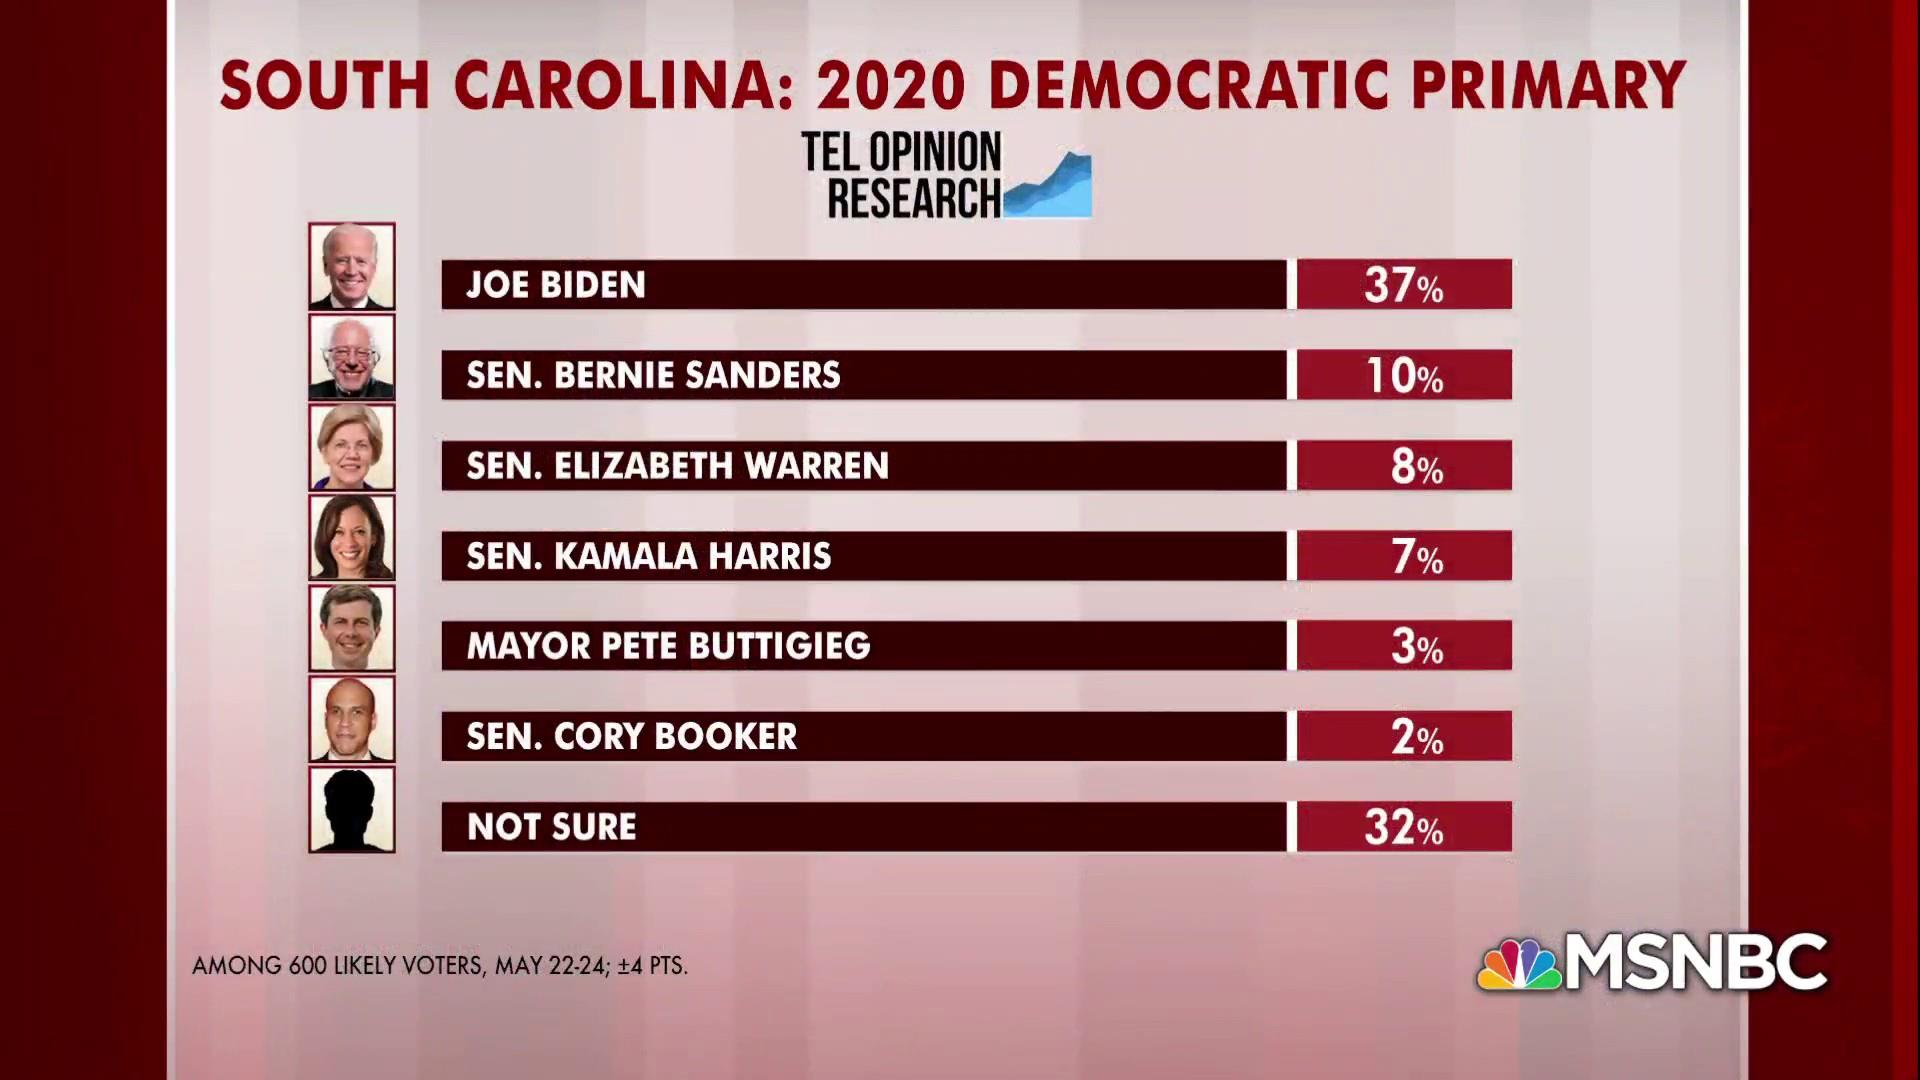 SC Dem primary poll: Beyond Biden lead, many undecided